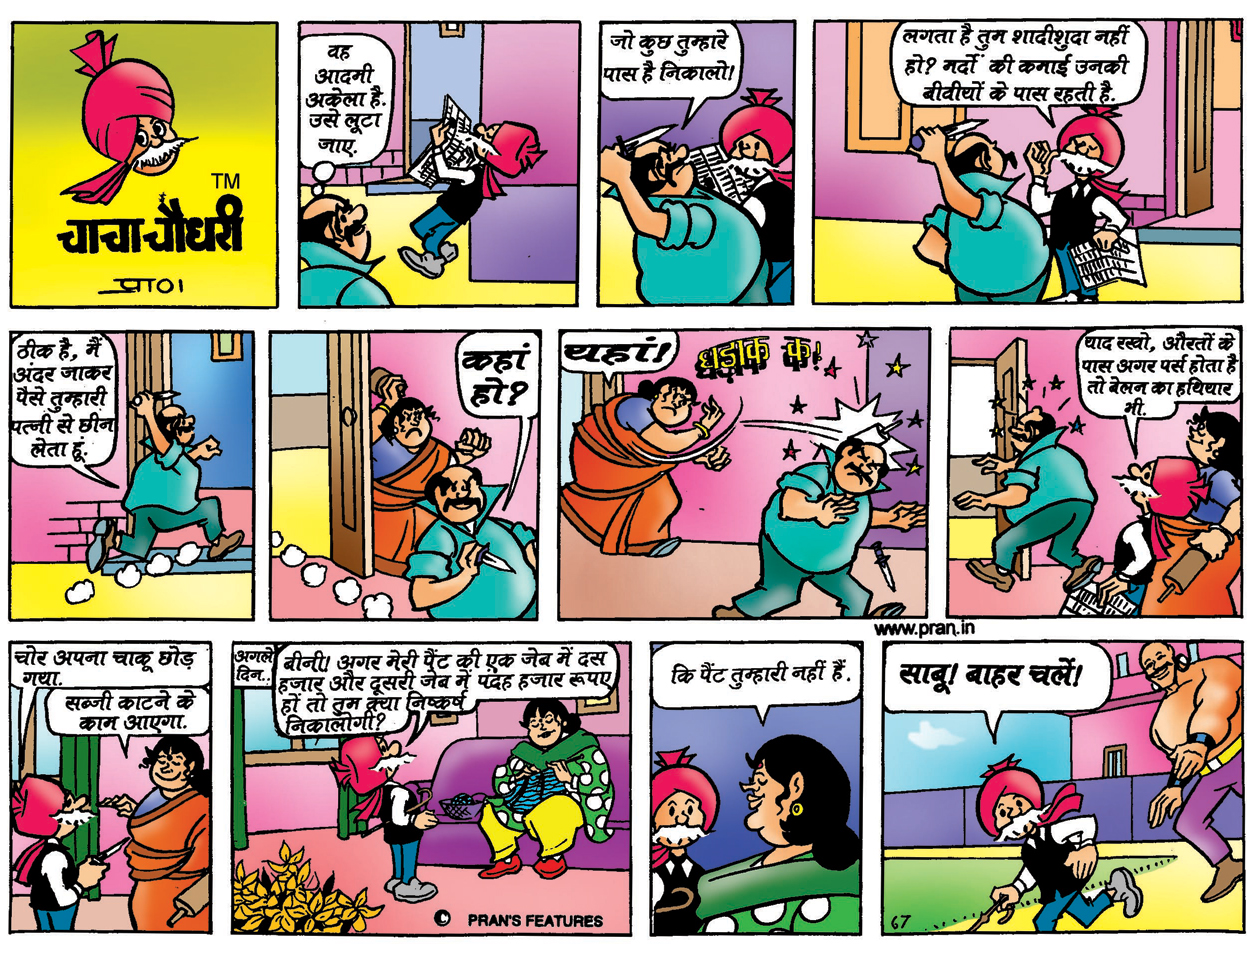 Best of Chacha Chaudhary's comics: What PRAN taught us